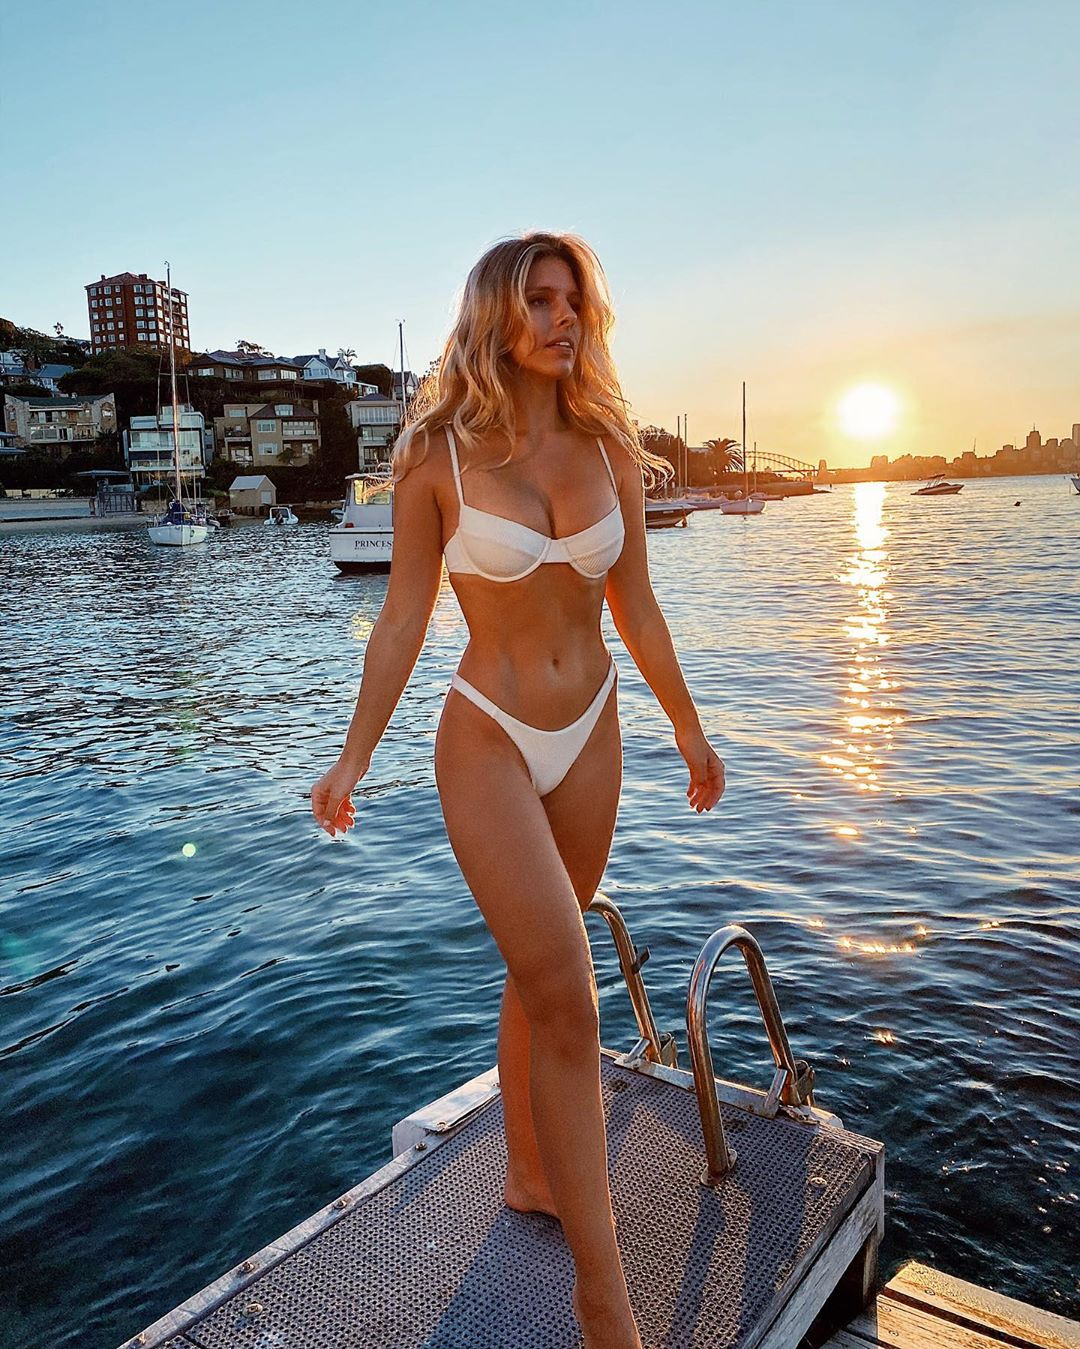 Natasha Oakley donning Skimpy ivory ribbed Monday Swimwear bikini bottom with a ribbed fabric material